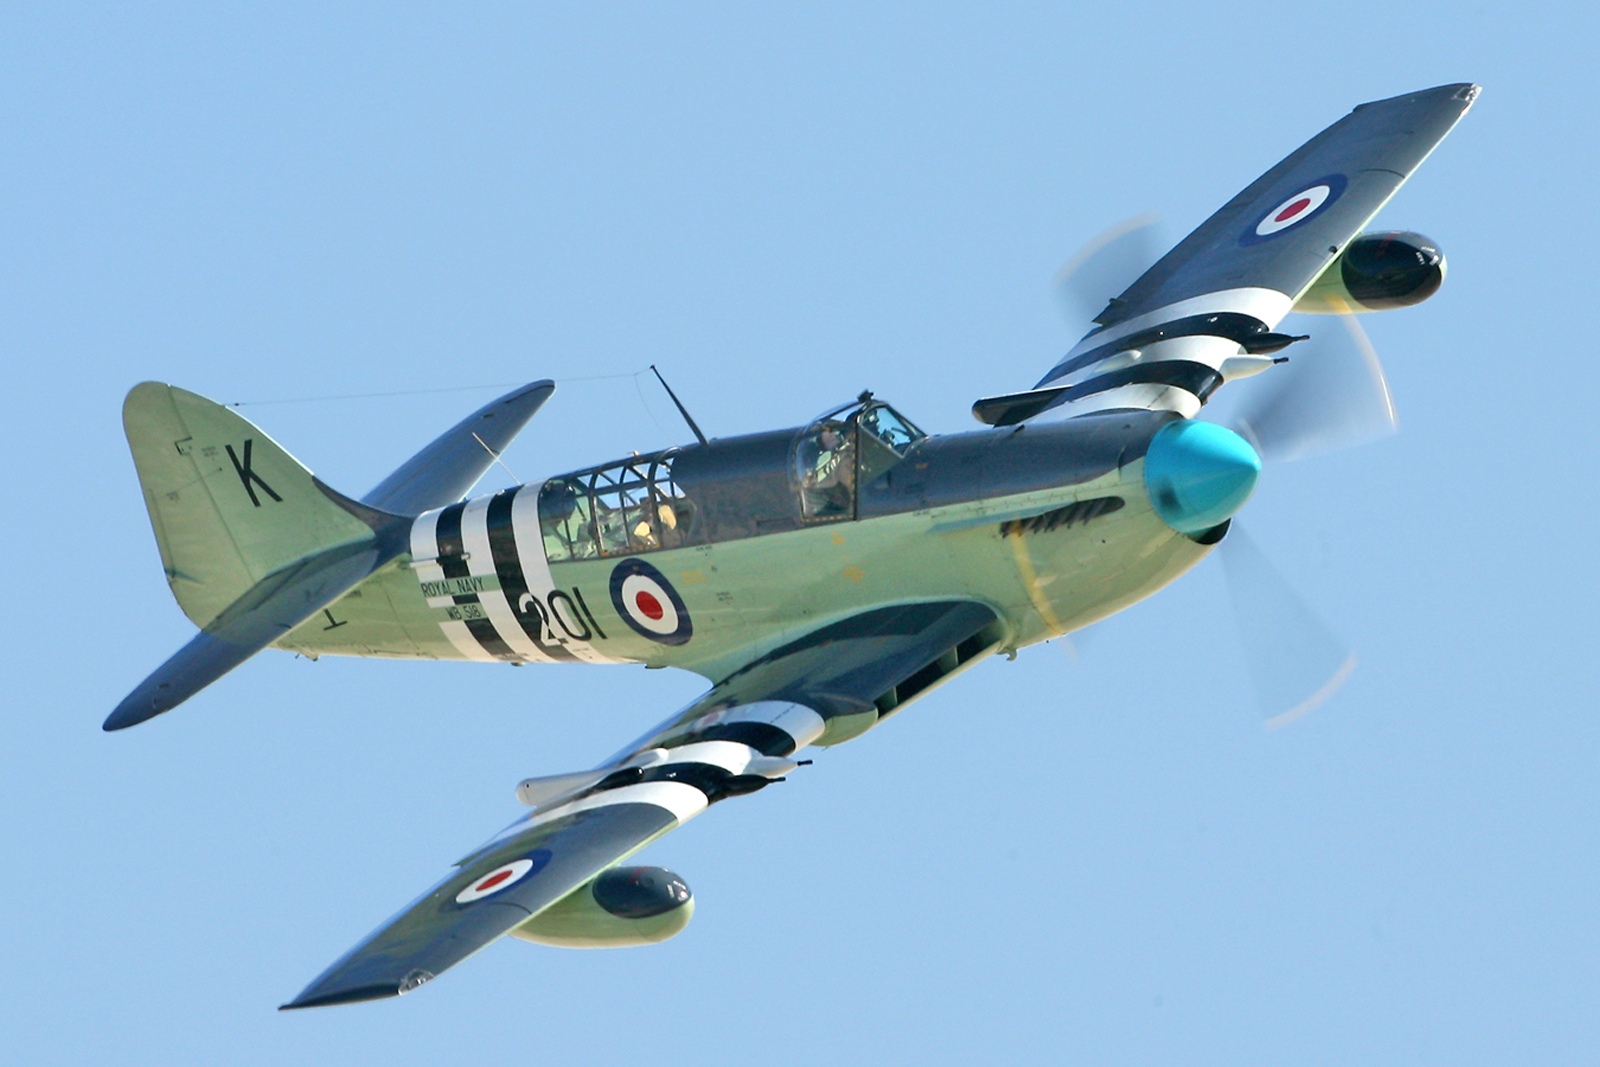 This Fairey Firefly Mk...